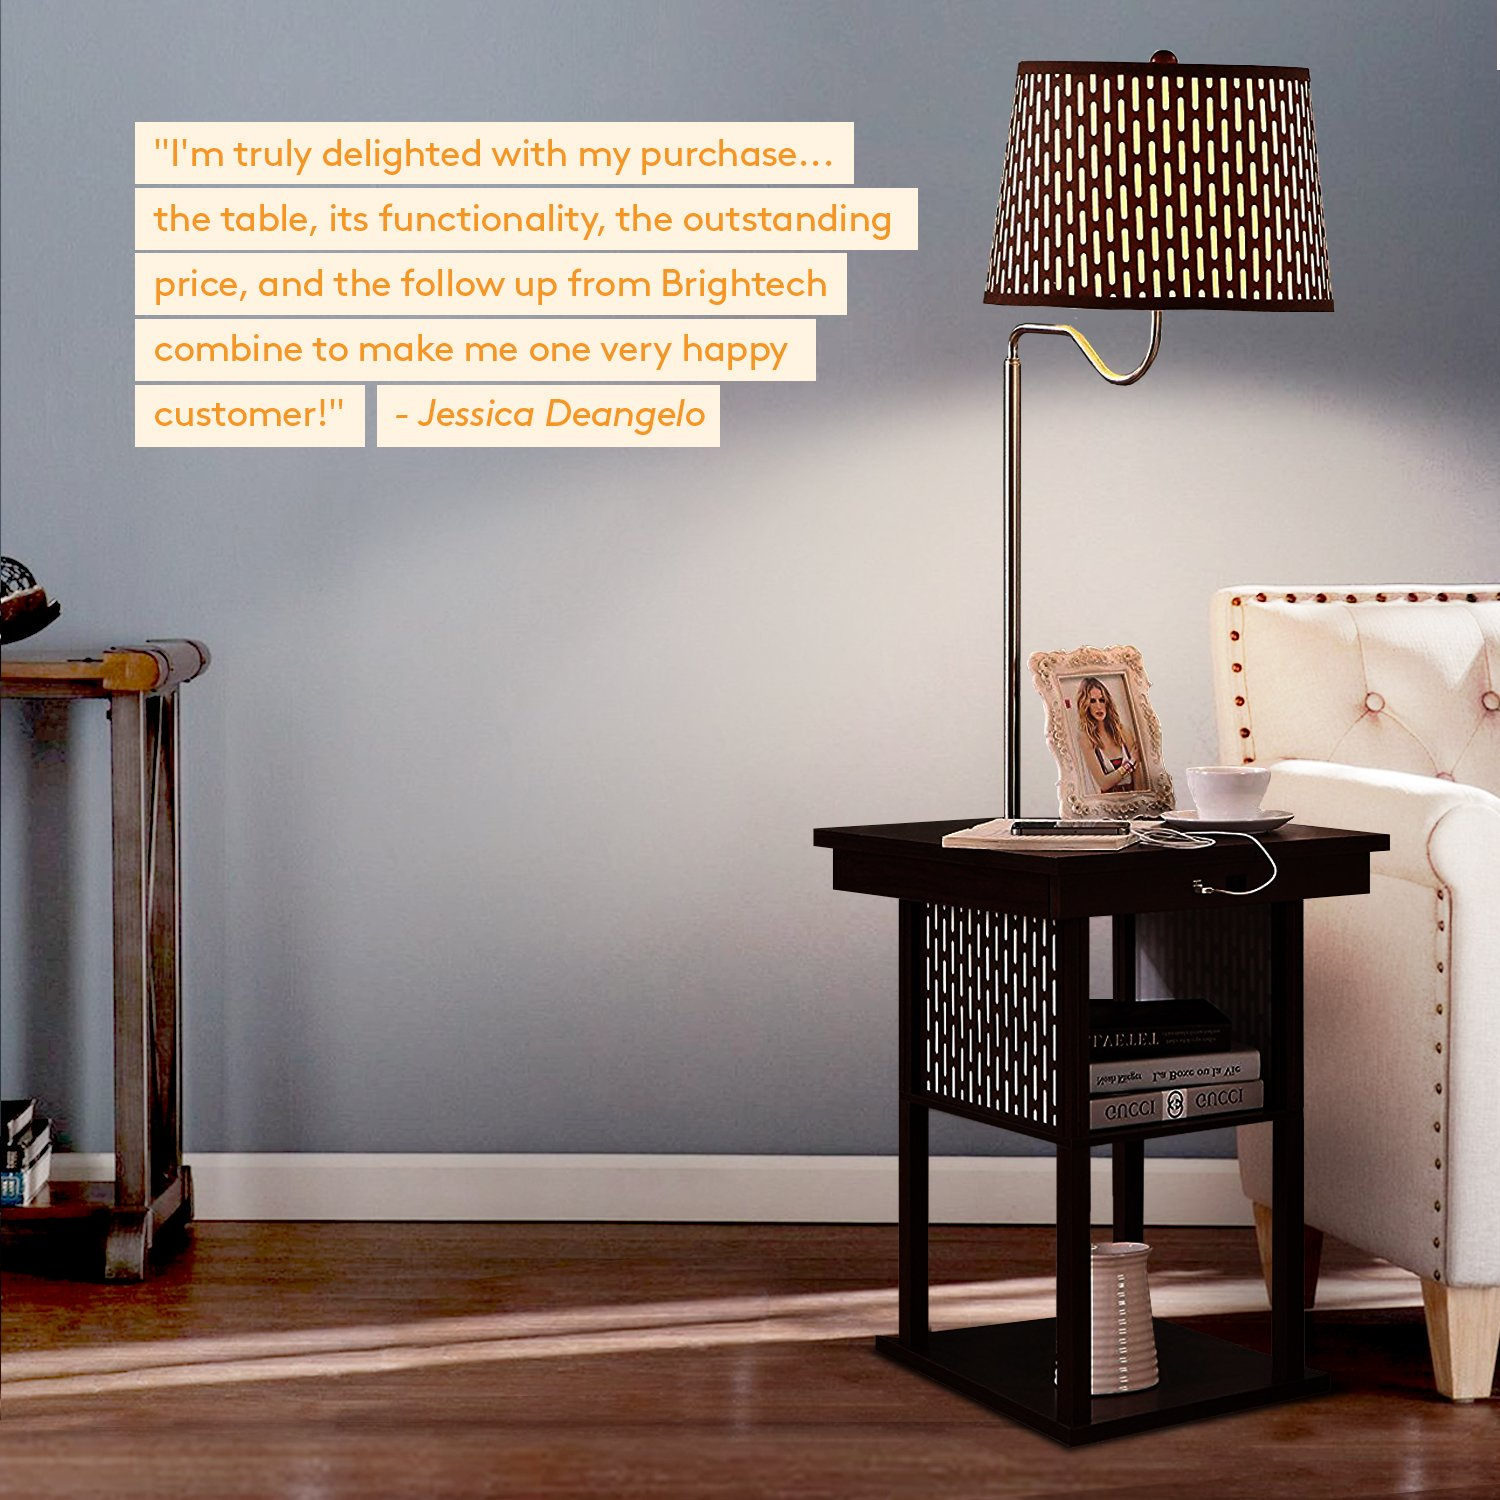 Brightech Madison - Mid Century Modern Nightstand, Shelves & USB Port Combination - Bedside Table with LED Floor Lamp Attached - End Table for Living Room Sofas - Brown by Brightech (Image #6)